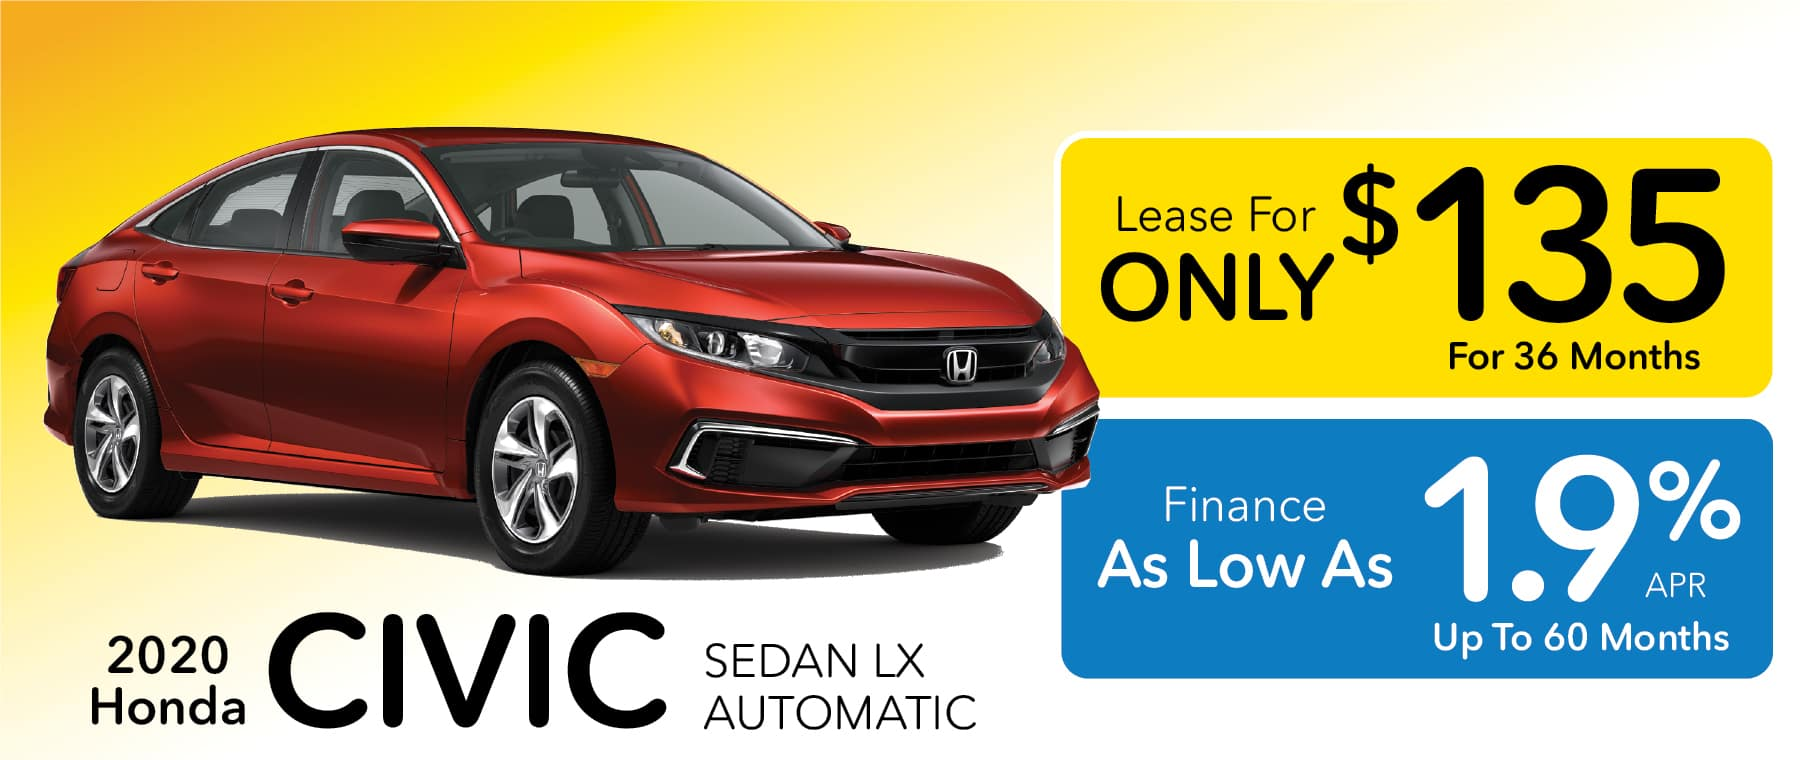 2020 Honda Civic Lease for $135 per month or finance for 1.9% APR for up to 60 months at Smail Honda